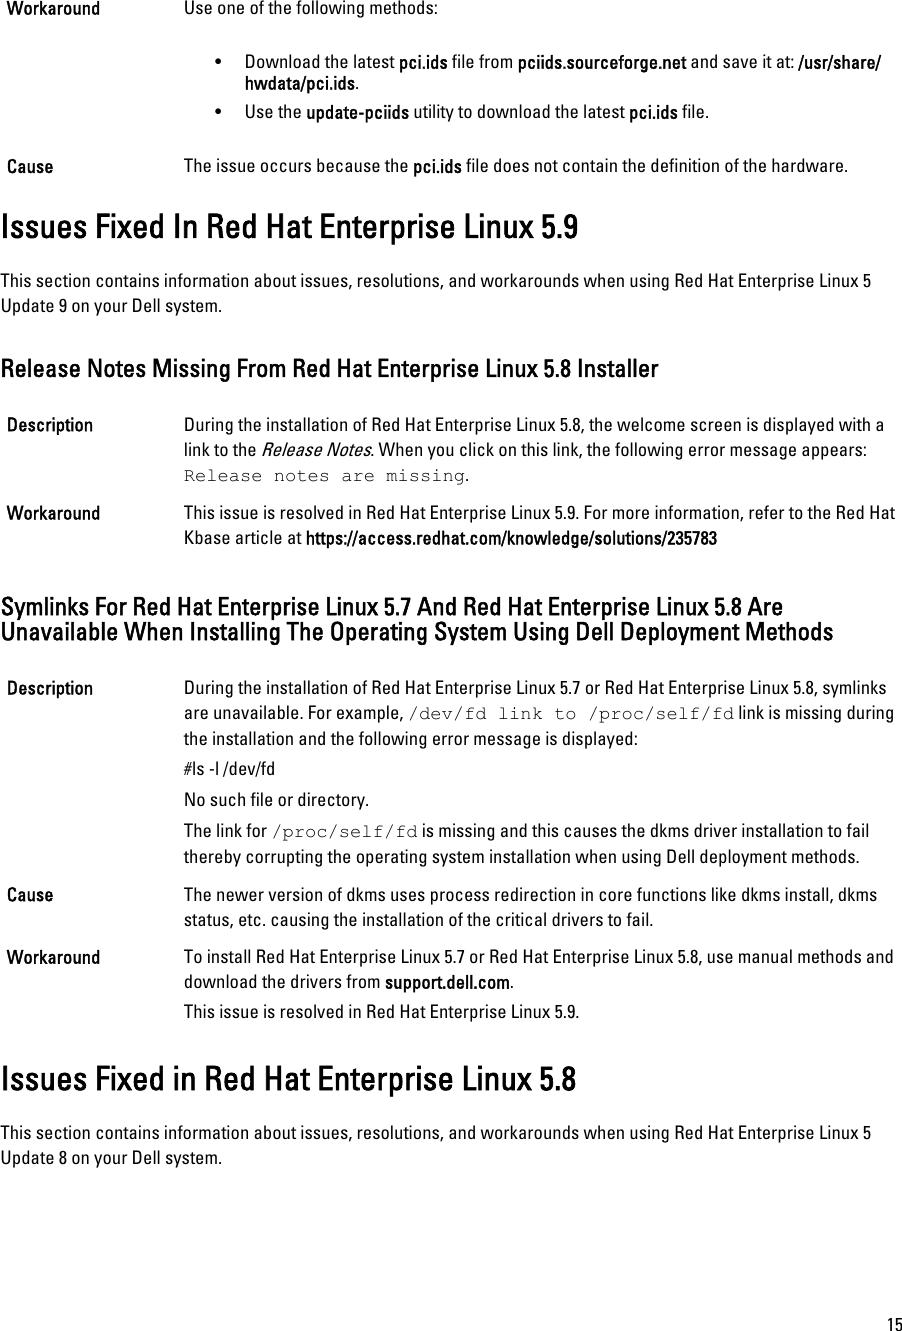 Dell Red Hat Enterprise Linux Version 5 Owners Manual